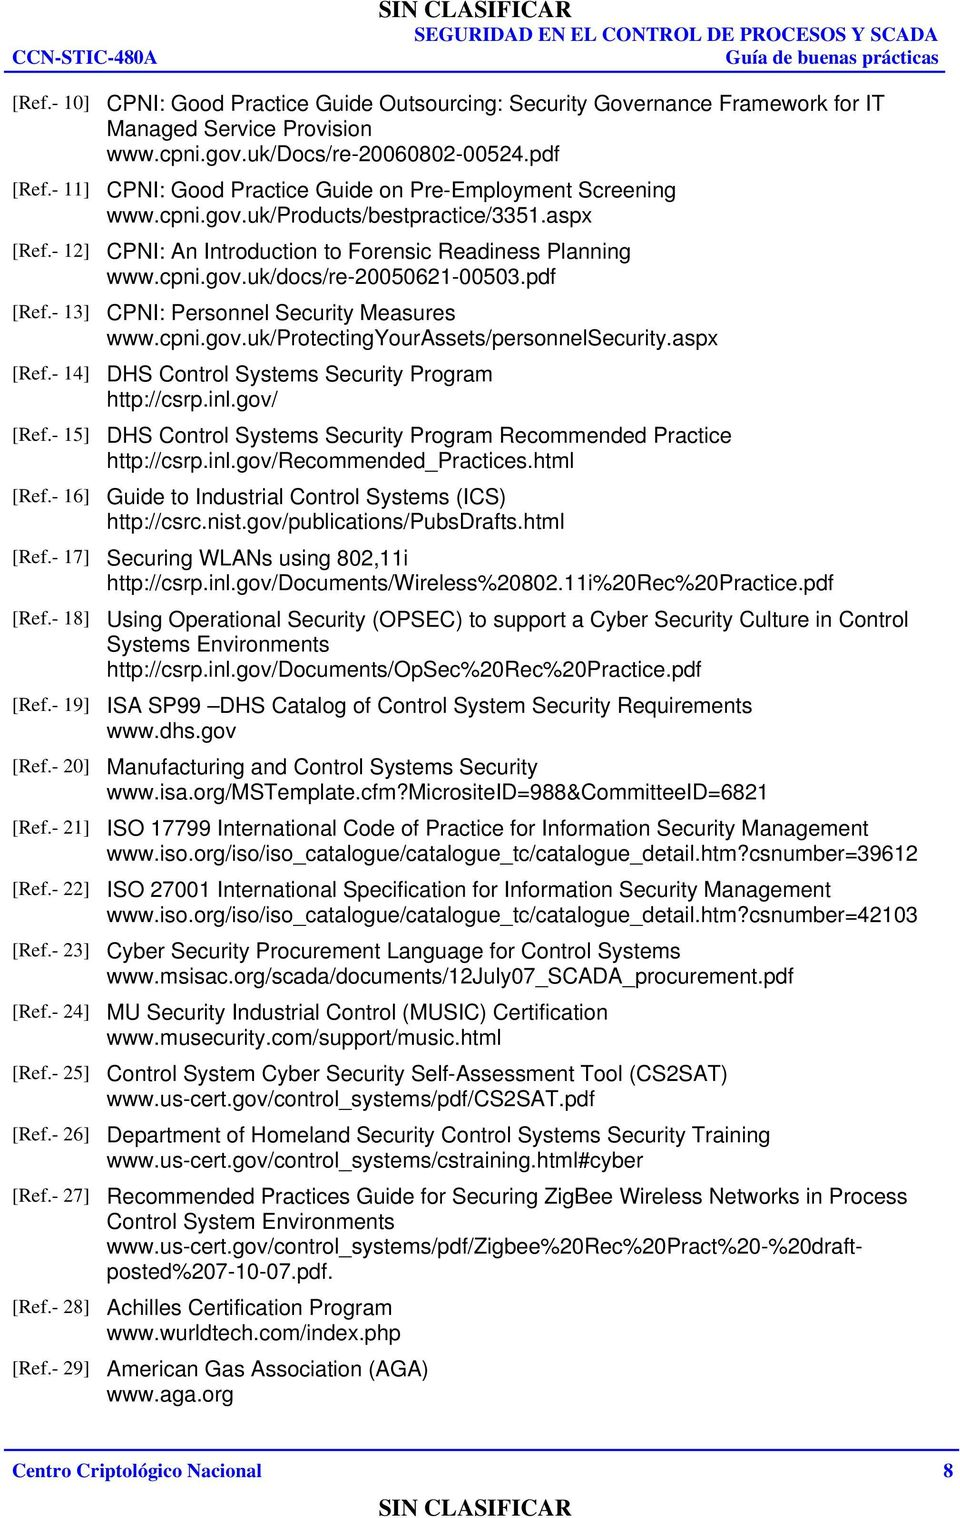 pdf [Ref.- 13] CPNI: Personnel Security Measures www.cpni.gov.uk/protectingyourassets/personnelsecurity.aspx [Ref.- 14] DHS Control Systems Security Program http://csrp.inl.gov/ [Ref.